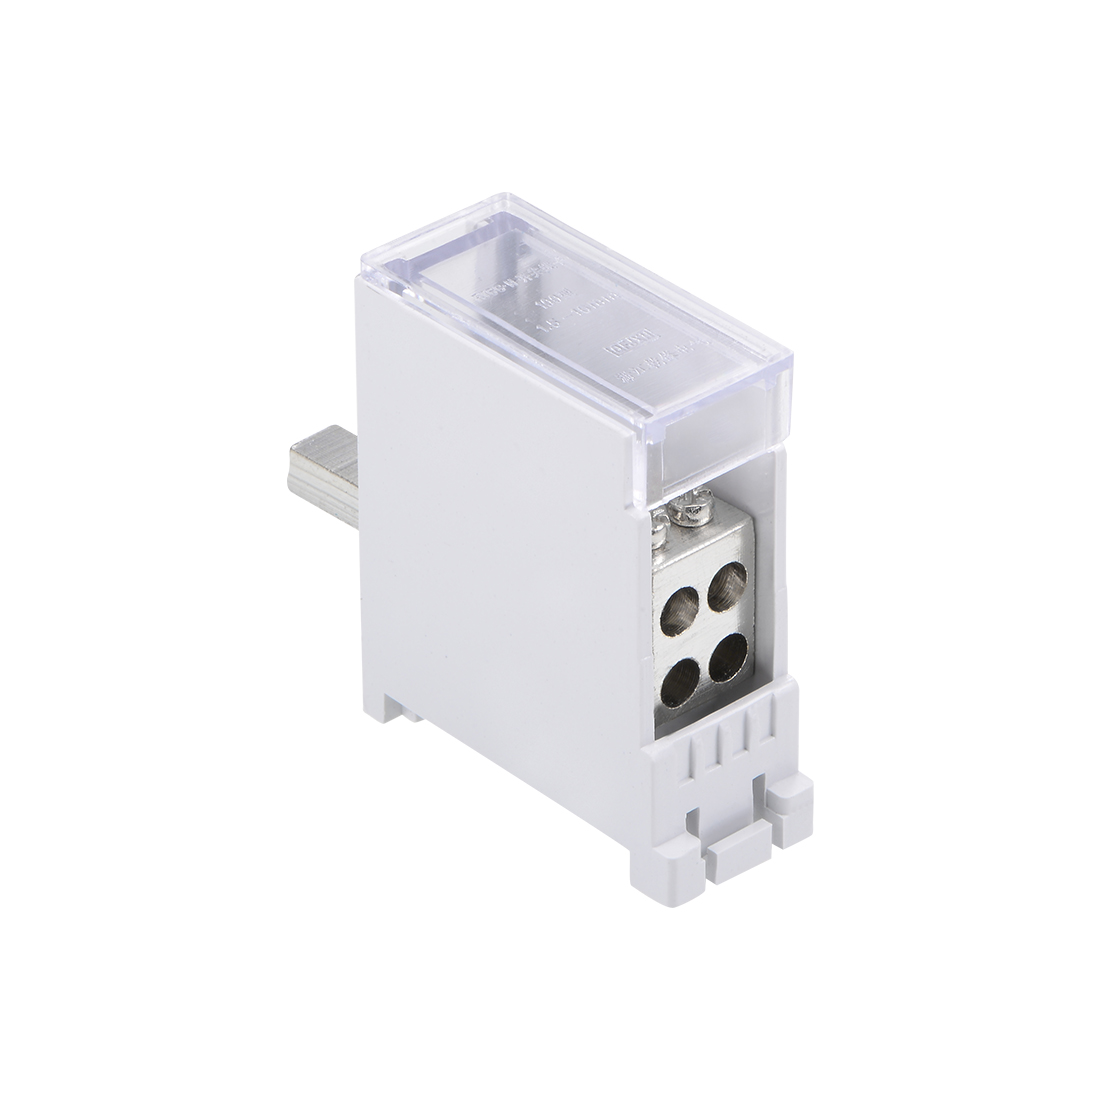 1 Inlet 4 Outlet Terminal Blocks DIN Rail Distribution Block for Circuit Breaker